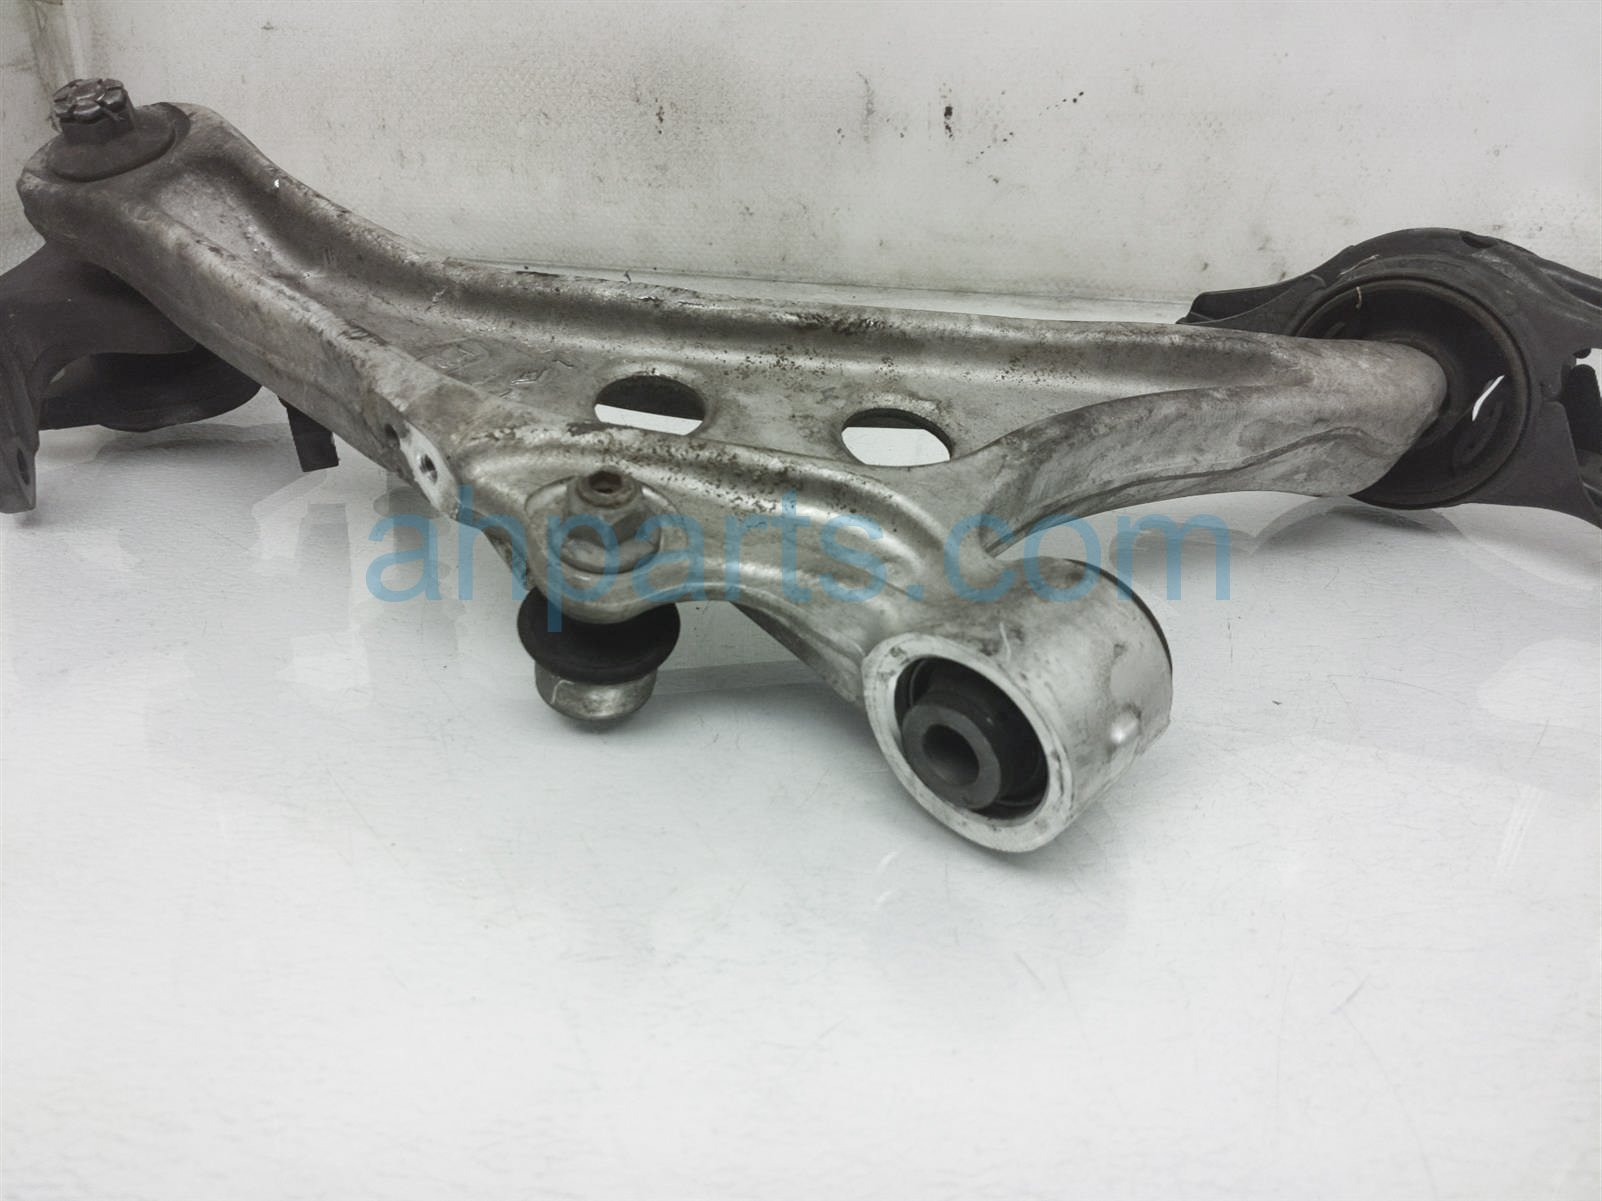 2018 Honda Civic Front Driver Lower Control Arm 51360 TGH A02 Replacement